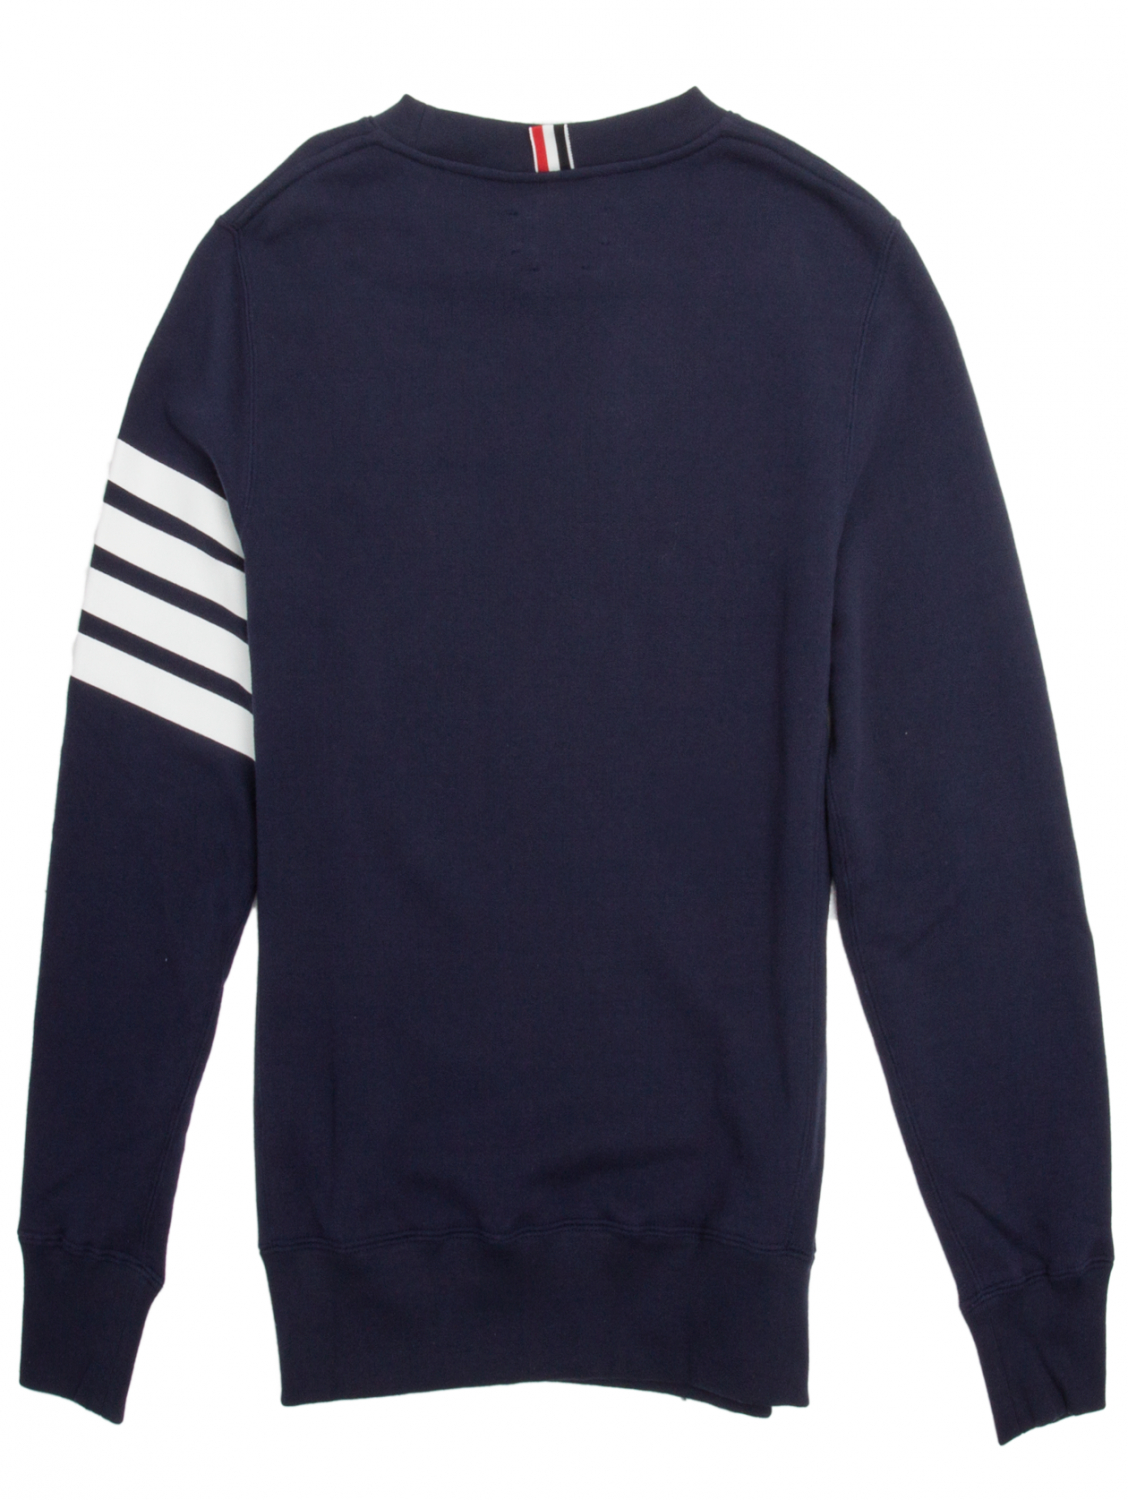 Thom browne Classic Crew Neck Sweatshirt Navy in Blue for Men | Lyst